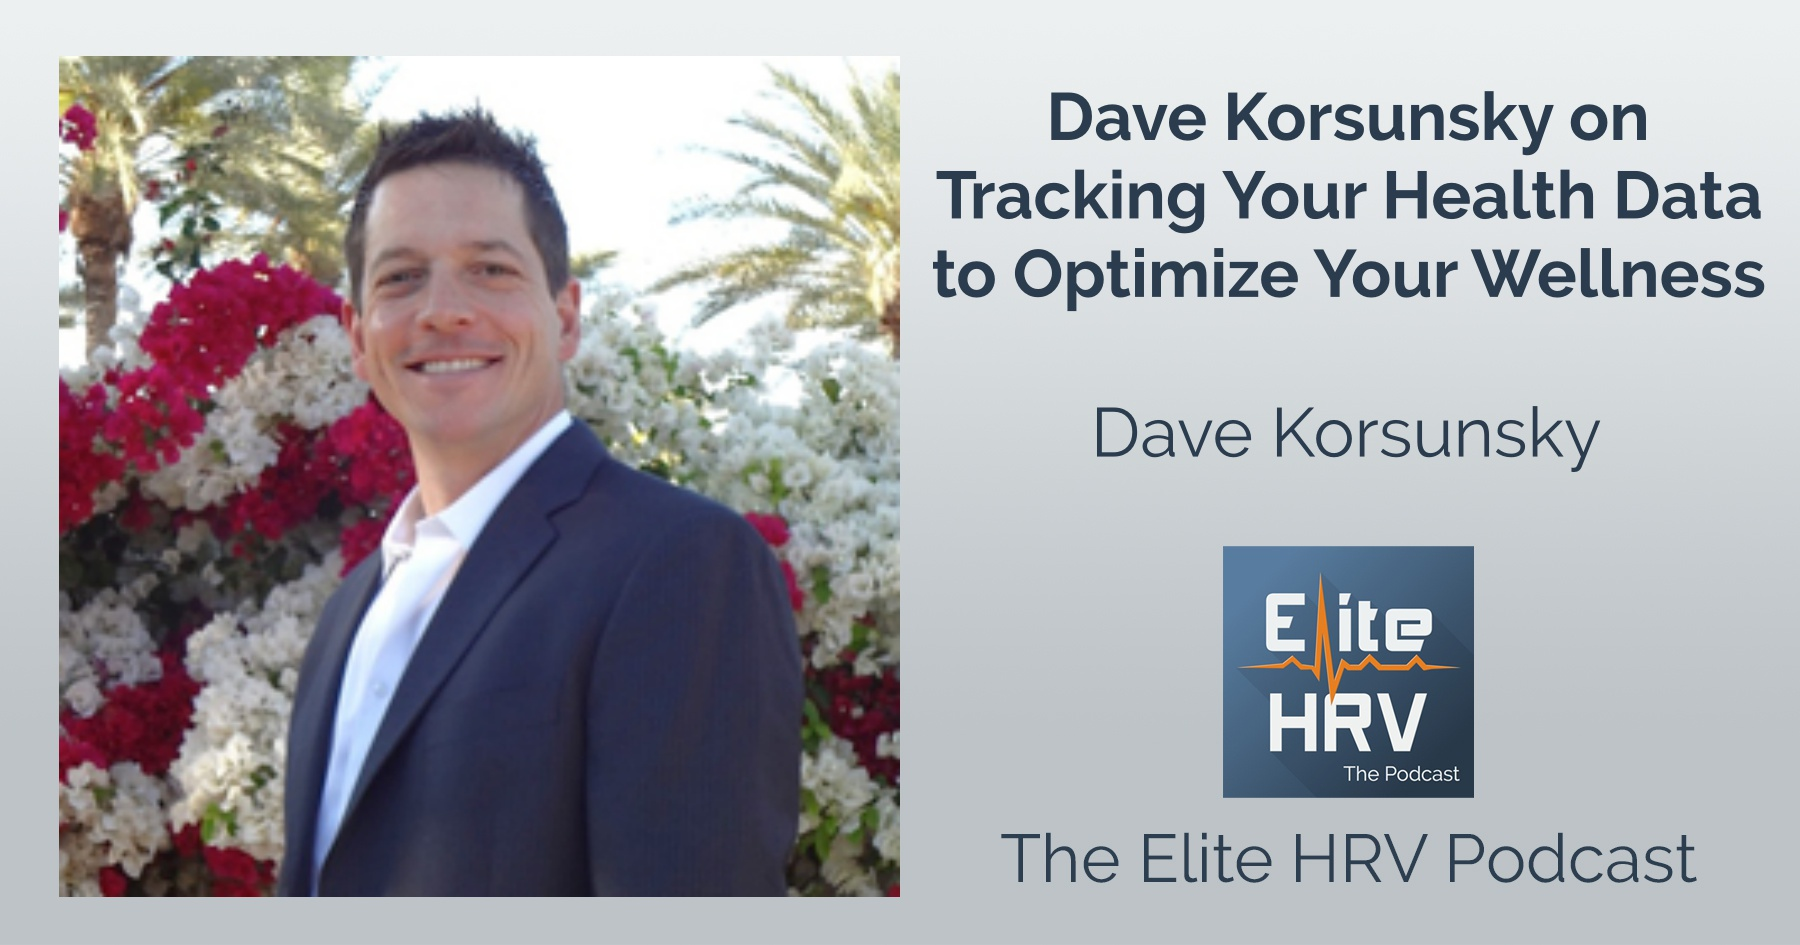 Dave Korsunsky on Tracking your Health Data to Optimize Your Wellness